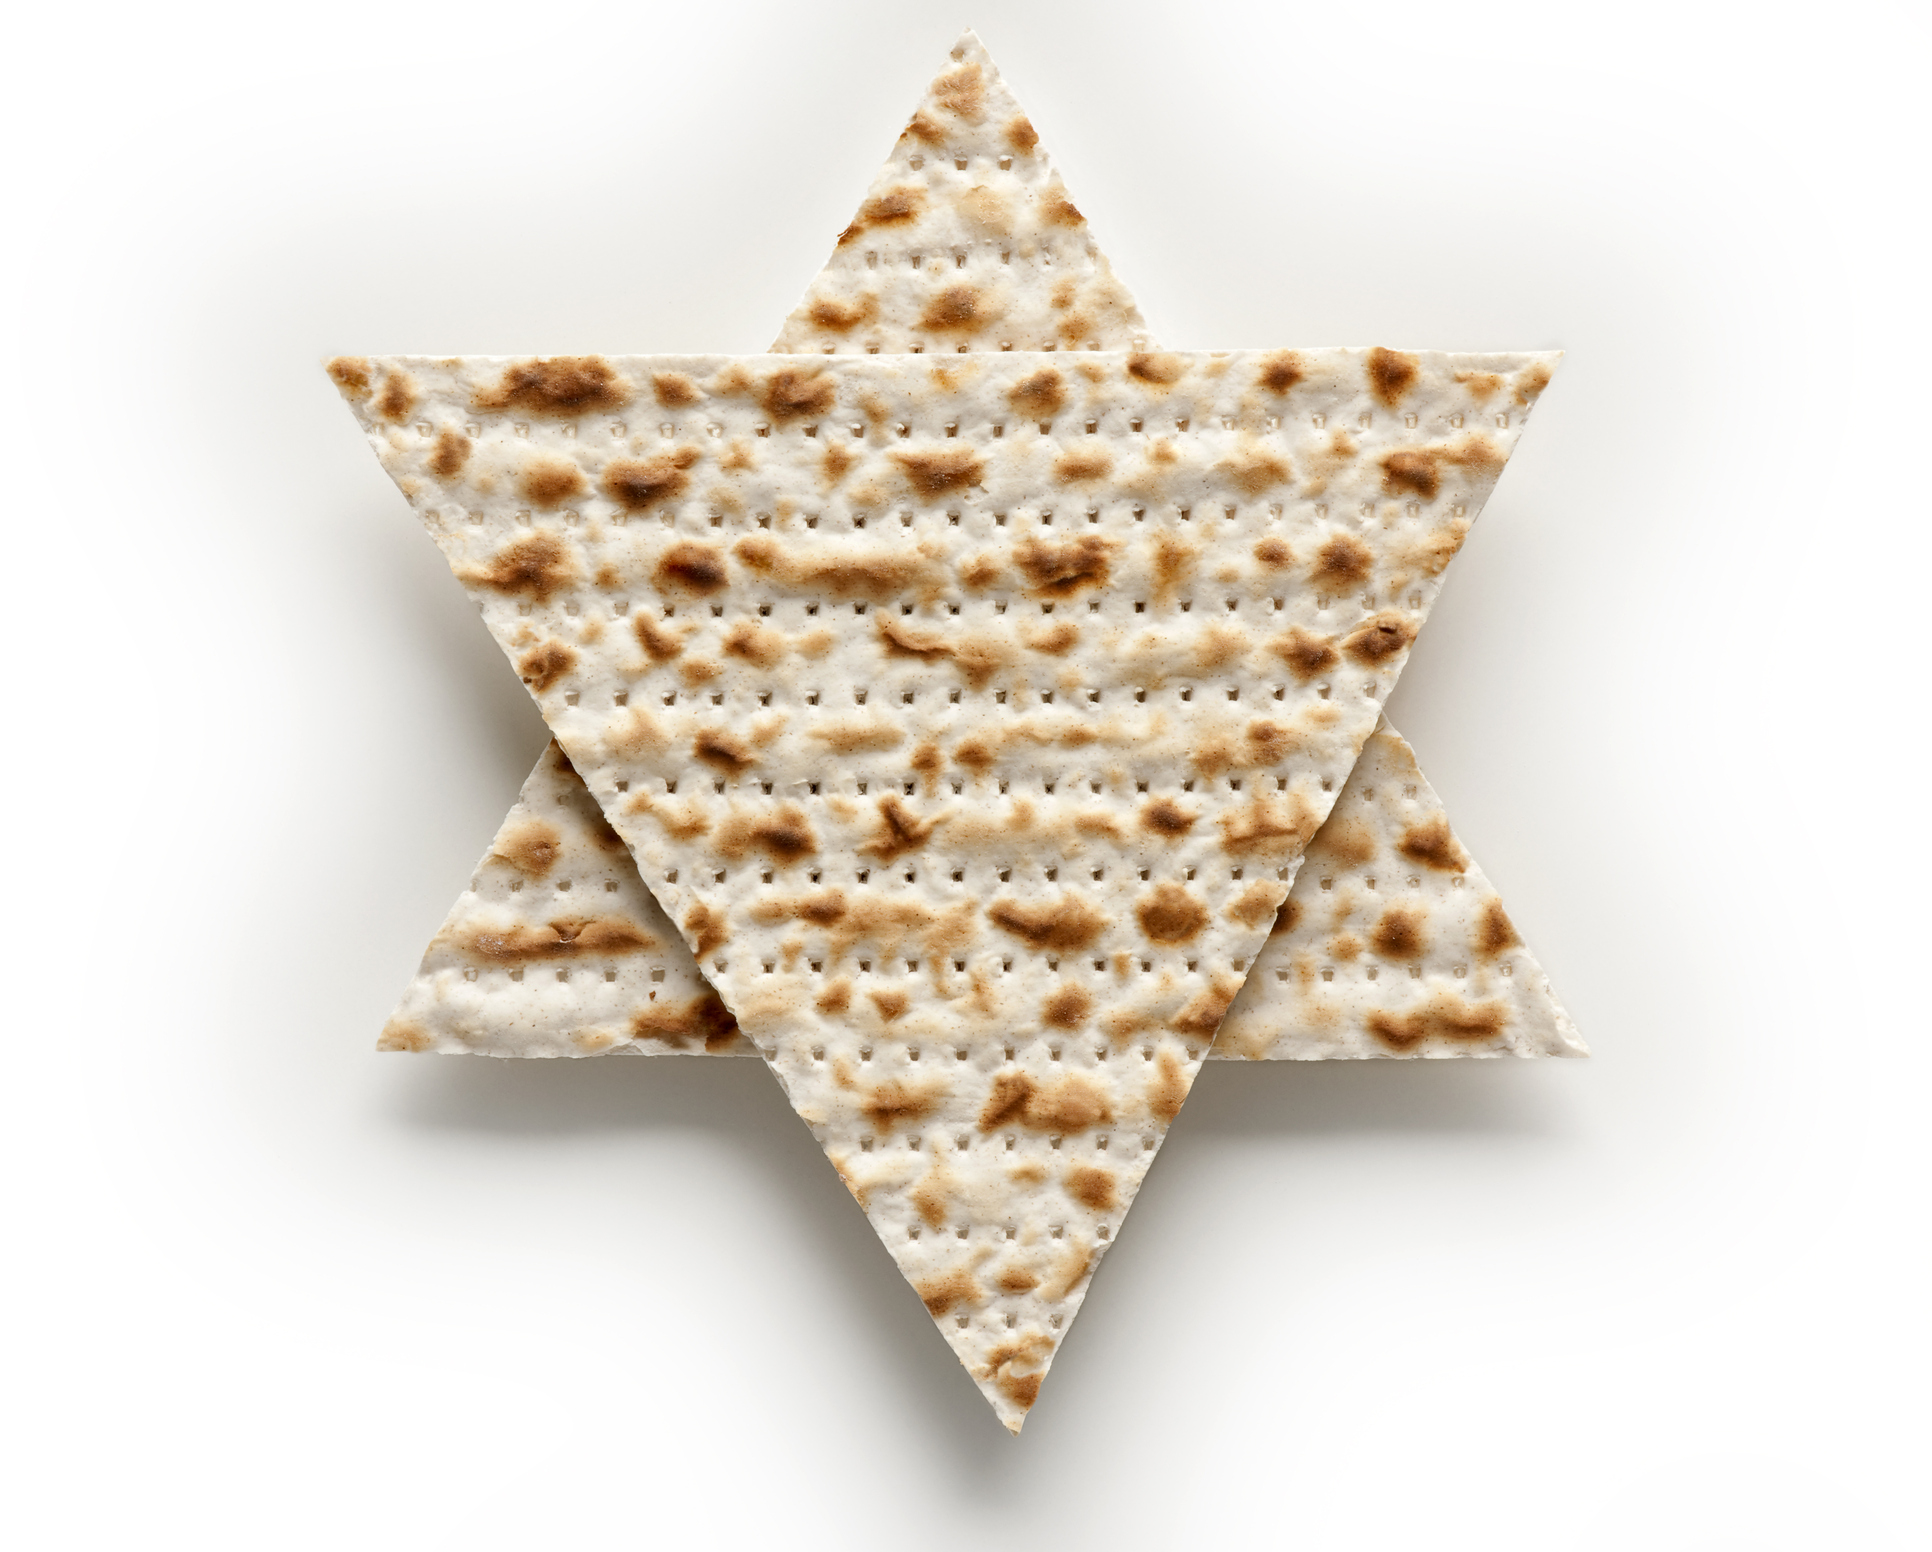 How to wish someone a happy Passover in Hebrew